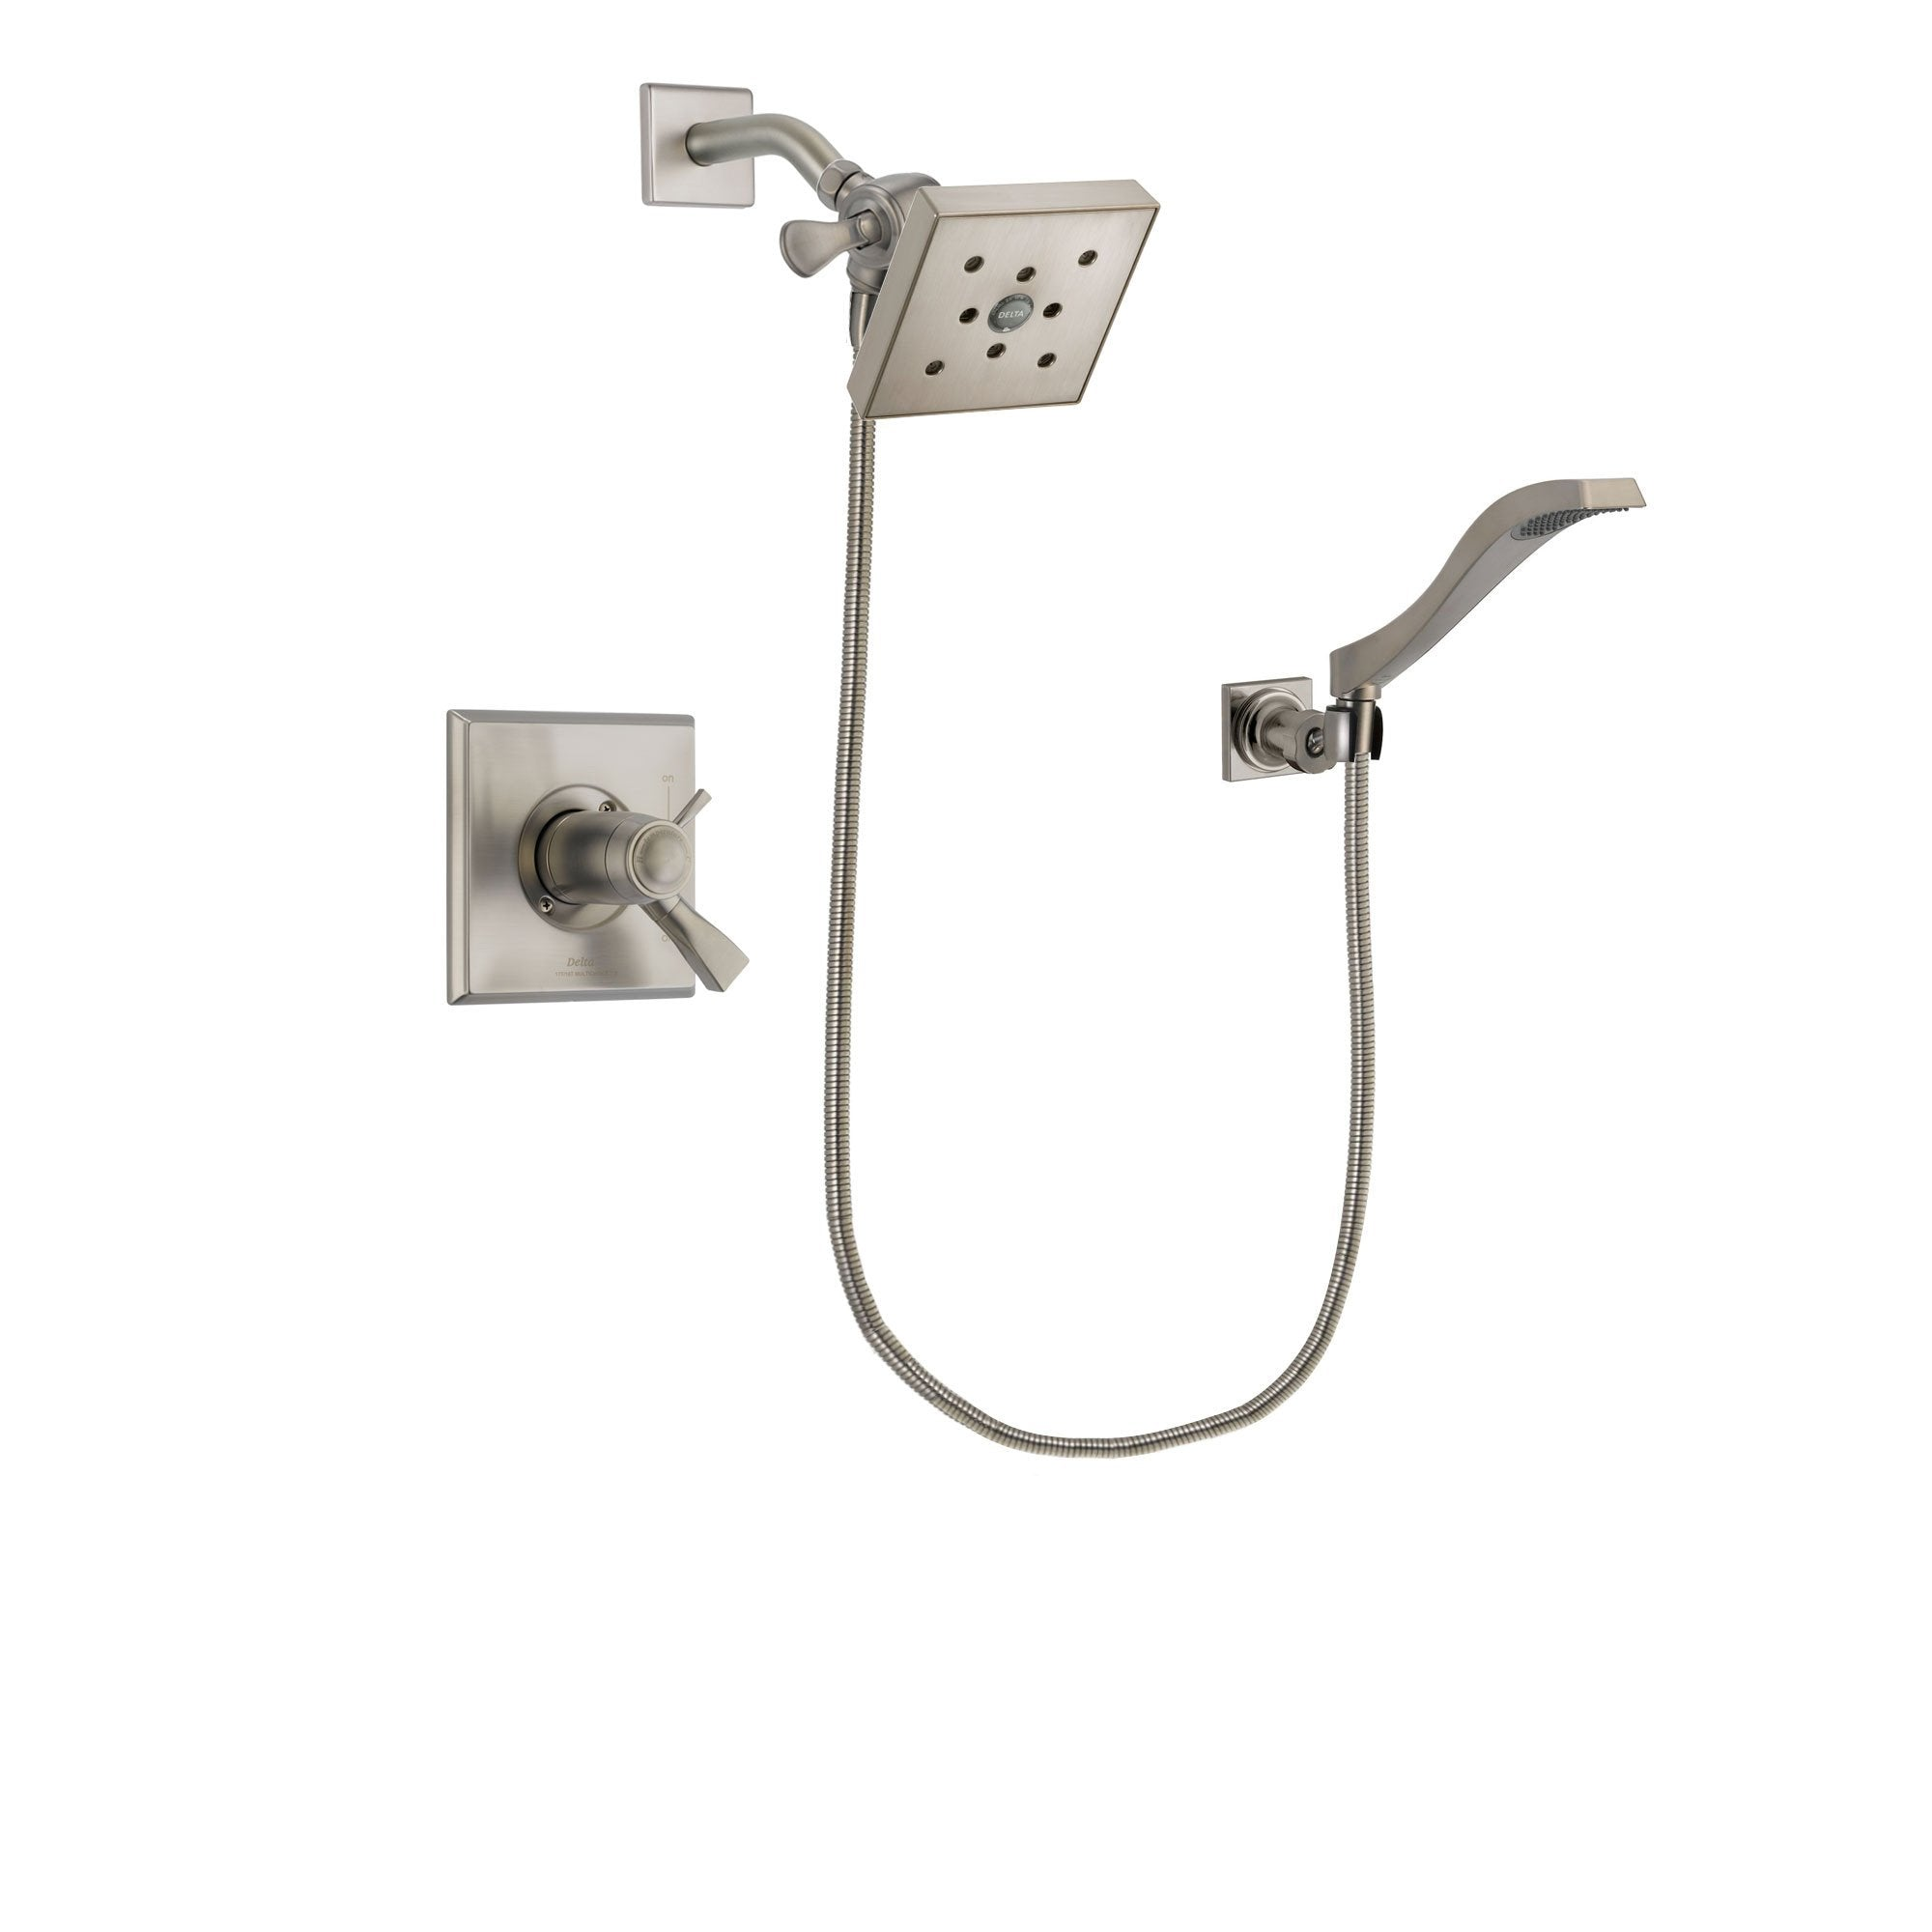 Delta Dryden Stainless Steel Finish Shower Faucet System w/ Hand Spray DSP2094V